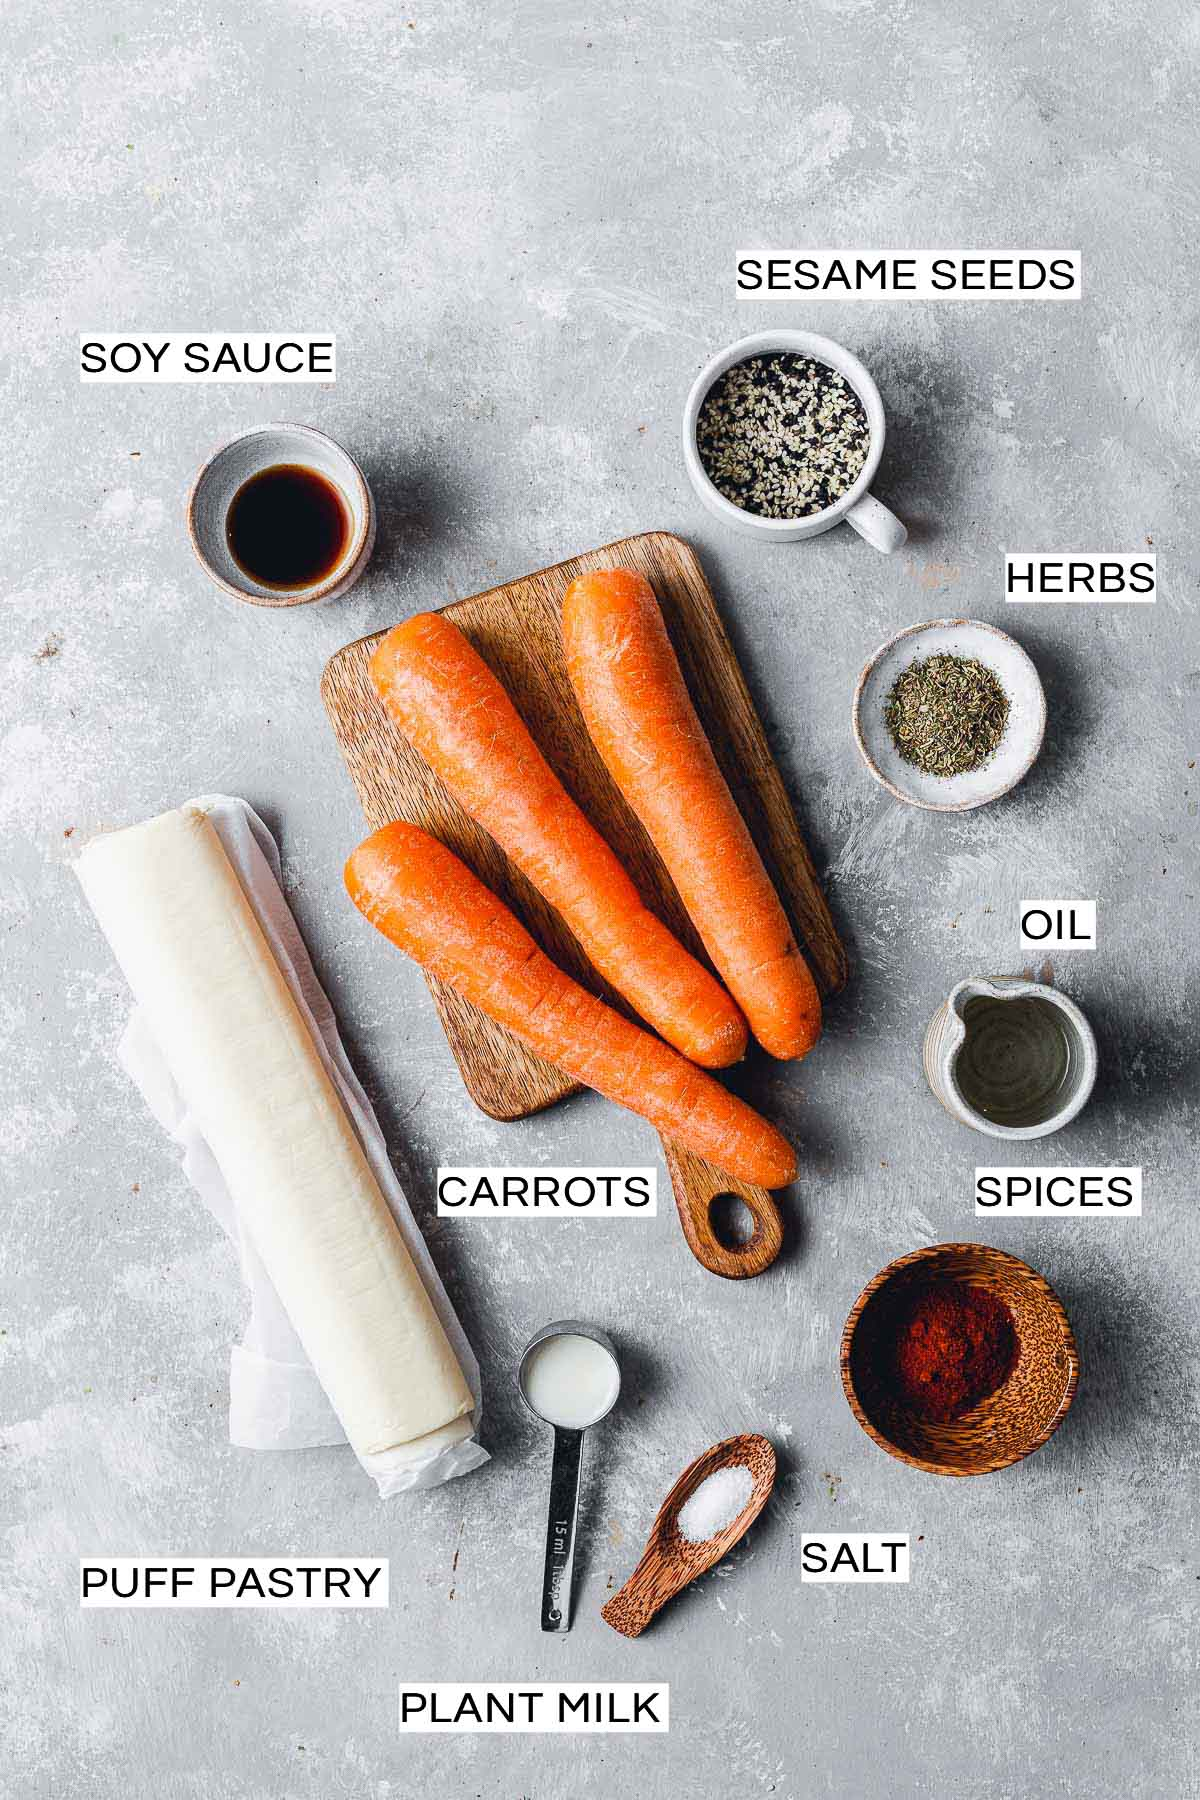 All ingredients needed to make carrots in a blanket on a flat surface.